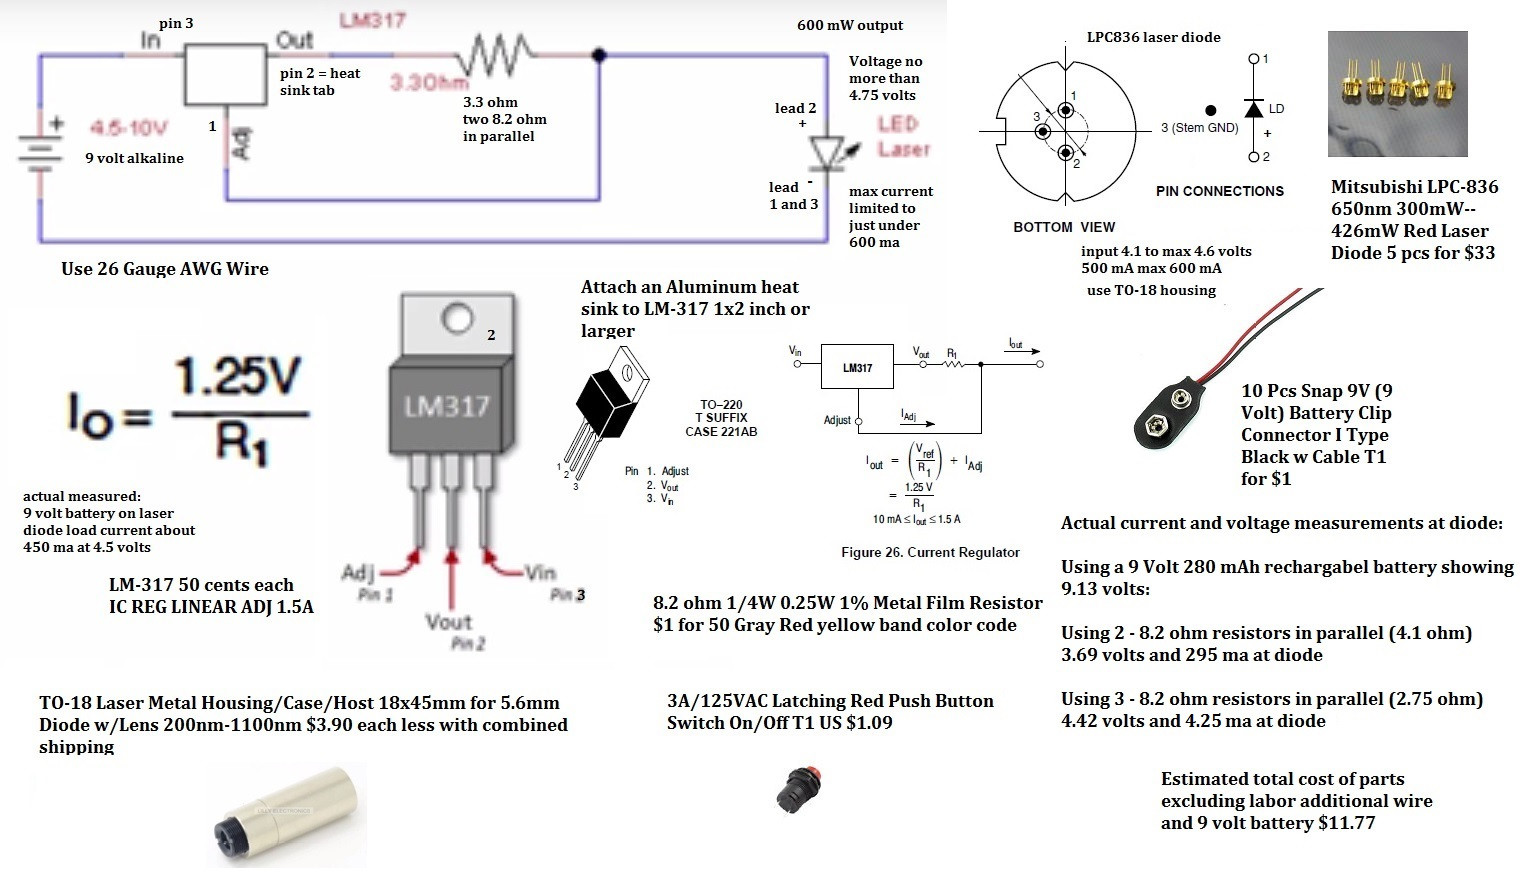 500mw laser diode: What's the point of a driver and will